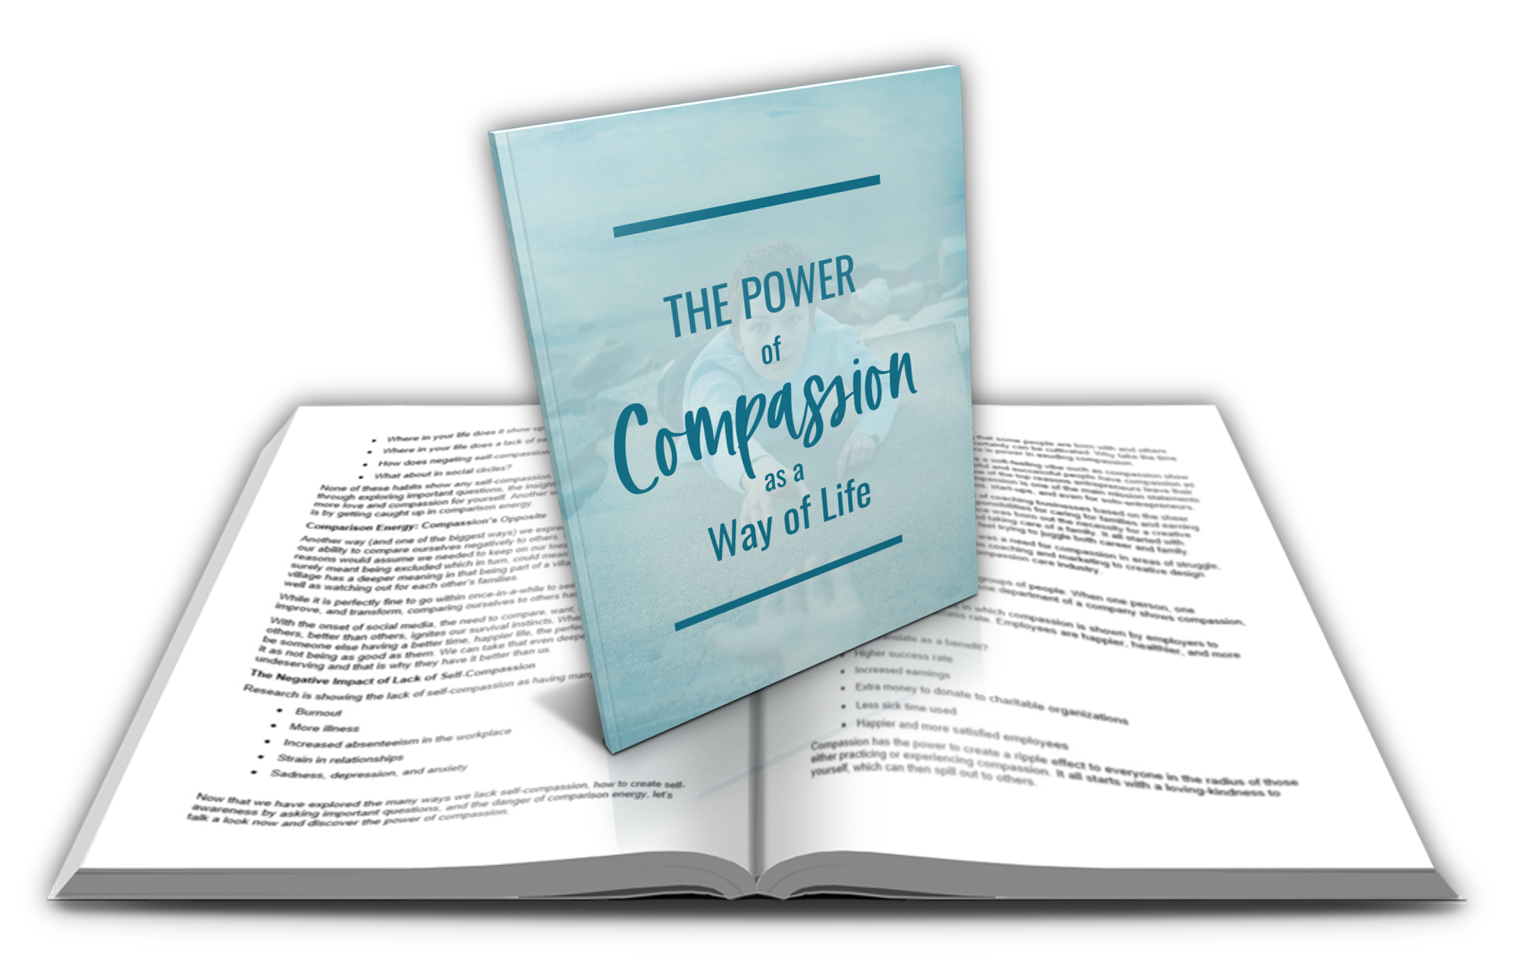 The Power of Compassion Report